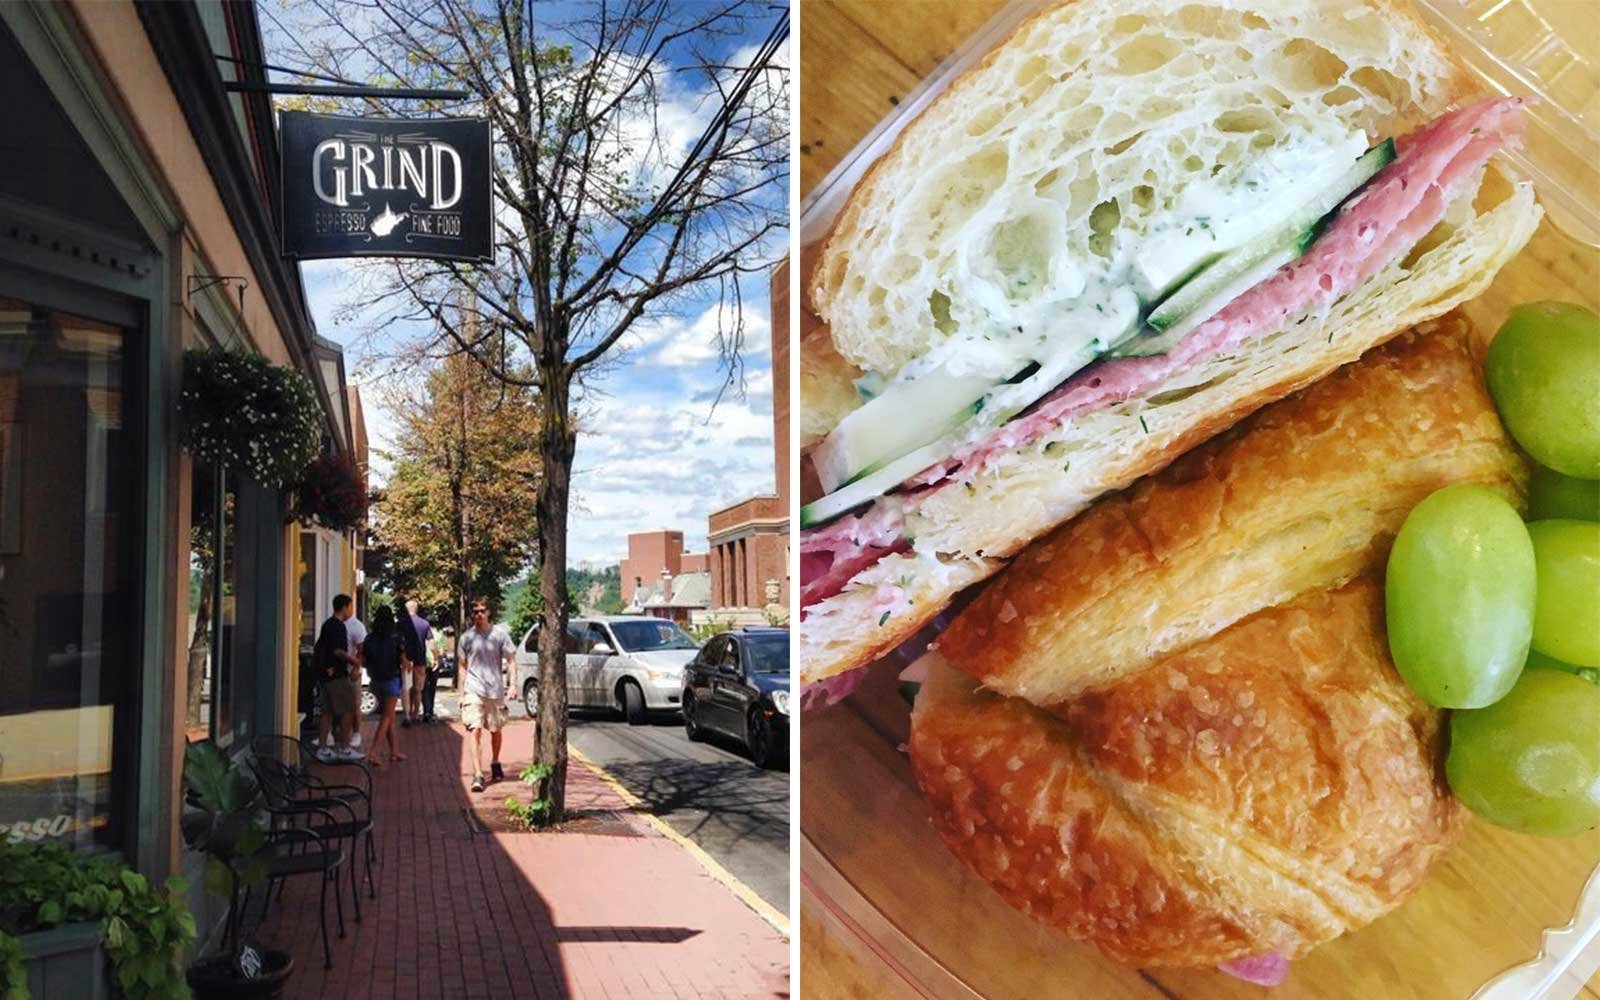 Sandwich at The Grind, in Morgantown West Virginia